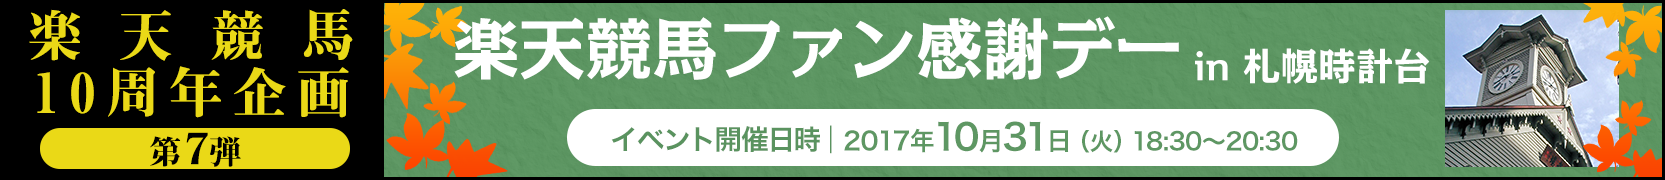 https://keiba.rakuten.co.jp/event/thanksgiving171031